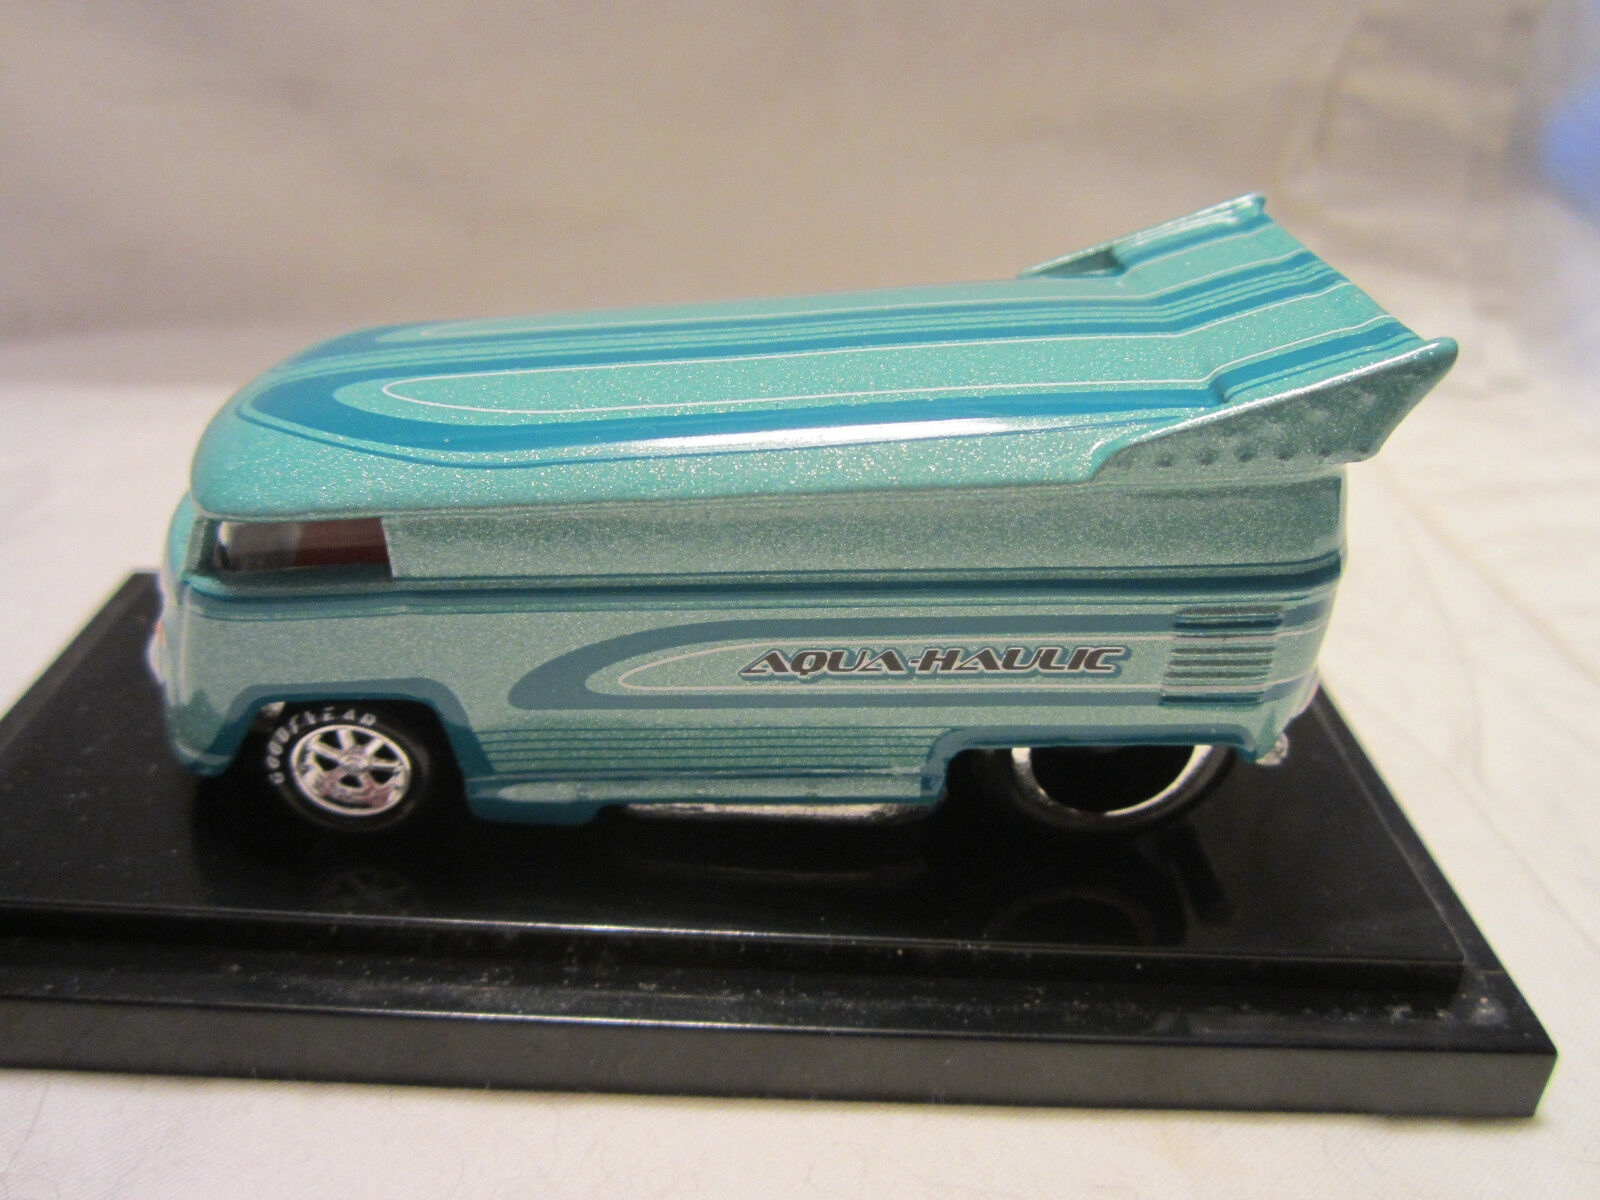 Hot Wheels Liberty Promotions Aqua-Haulic VW Drag Bus   185 1300